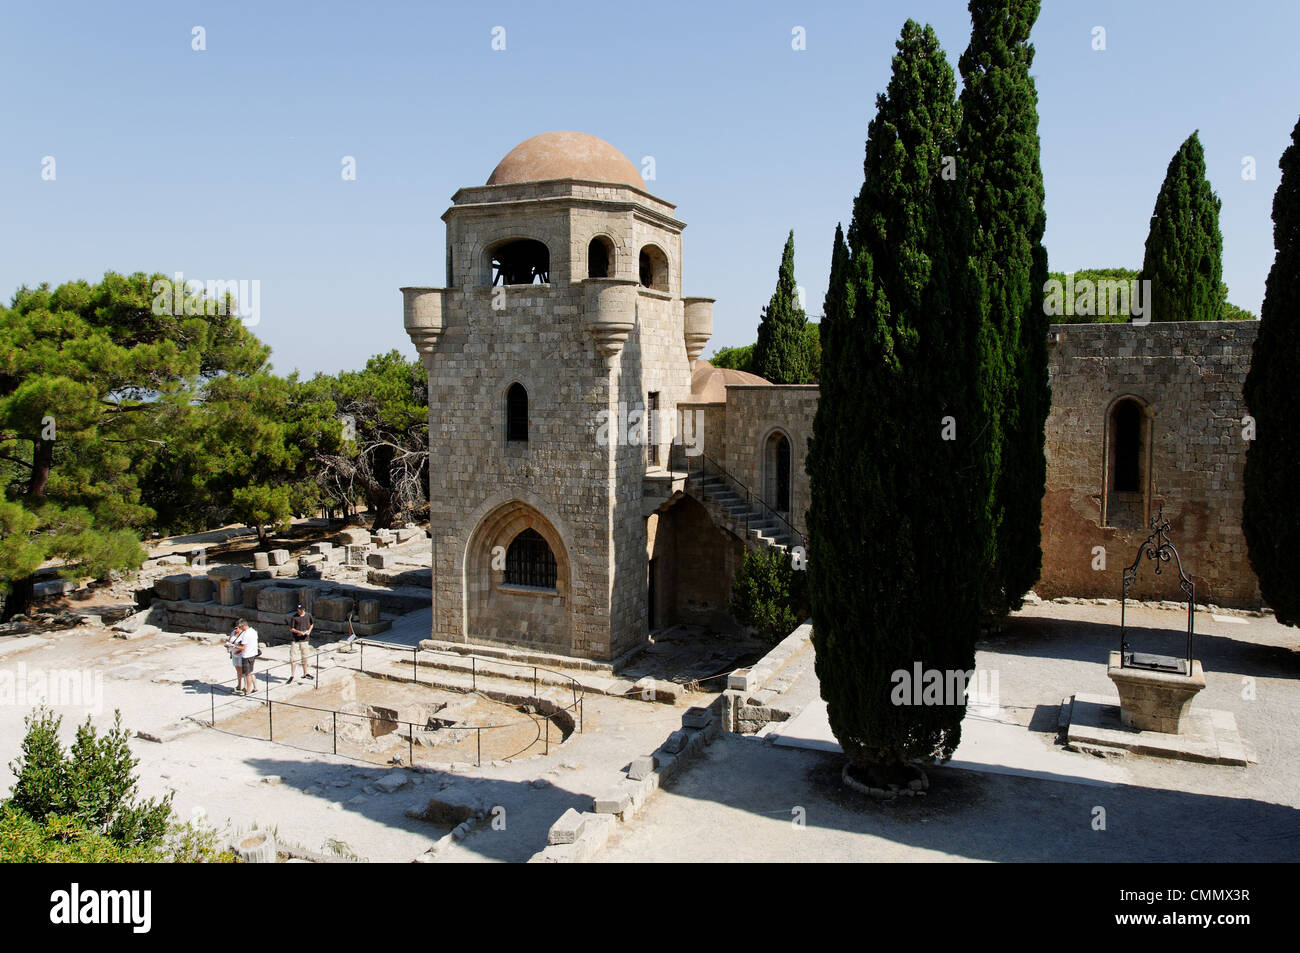 Rhodes. Greece. View of the 14th century golden walled Church of our Lady which was built by the Knights of St John - Stock Image